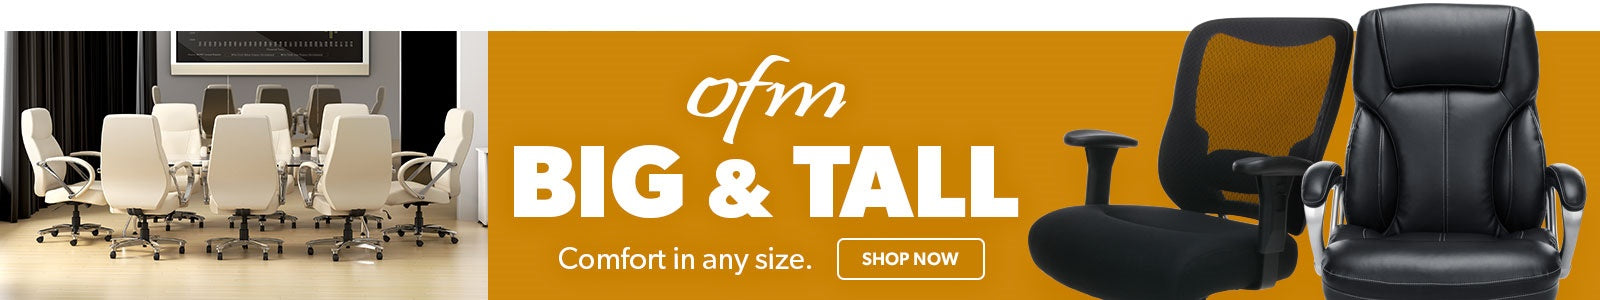 OFM Big and Tall Chair Collection Banner